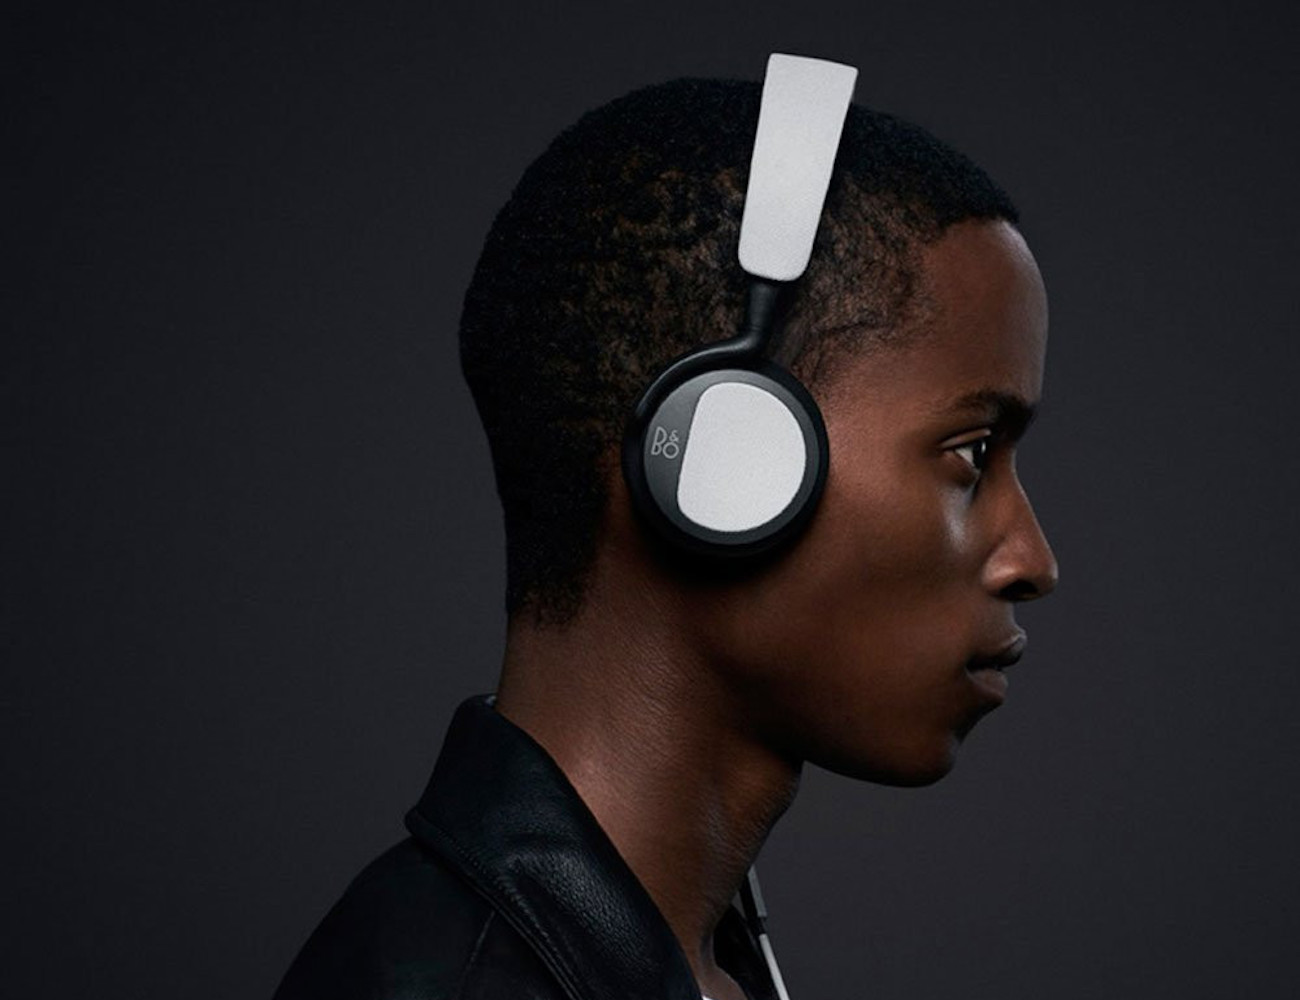 H2 Headphones by B&O BeoPlay